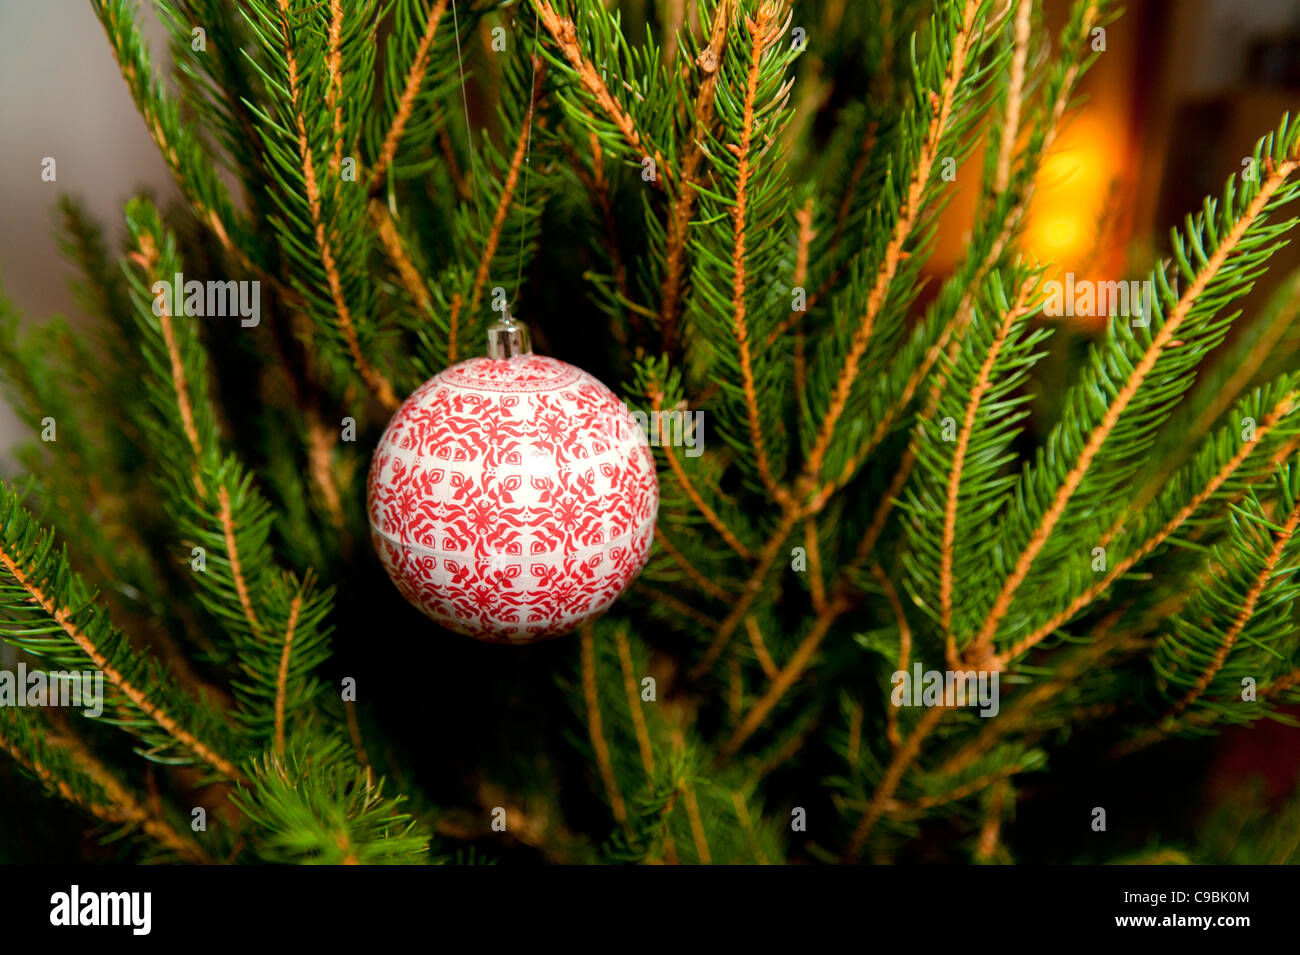 Ball on a Christmas tree - Stock Image